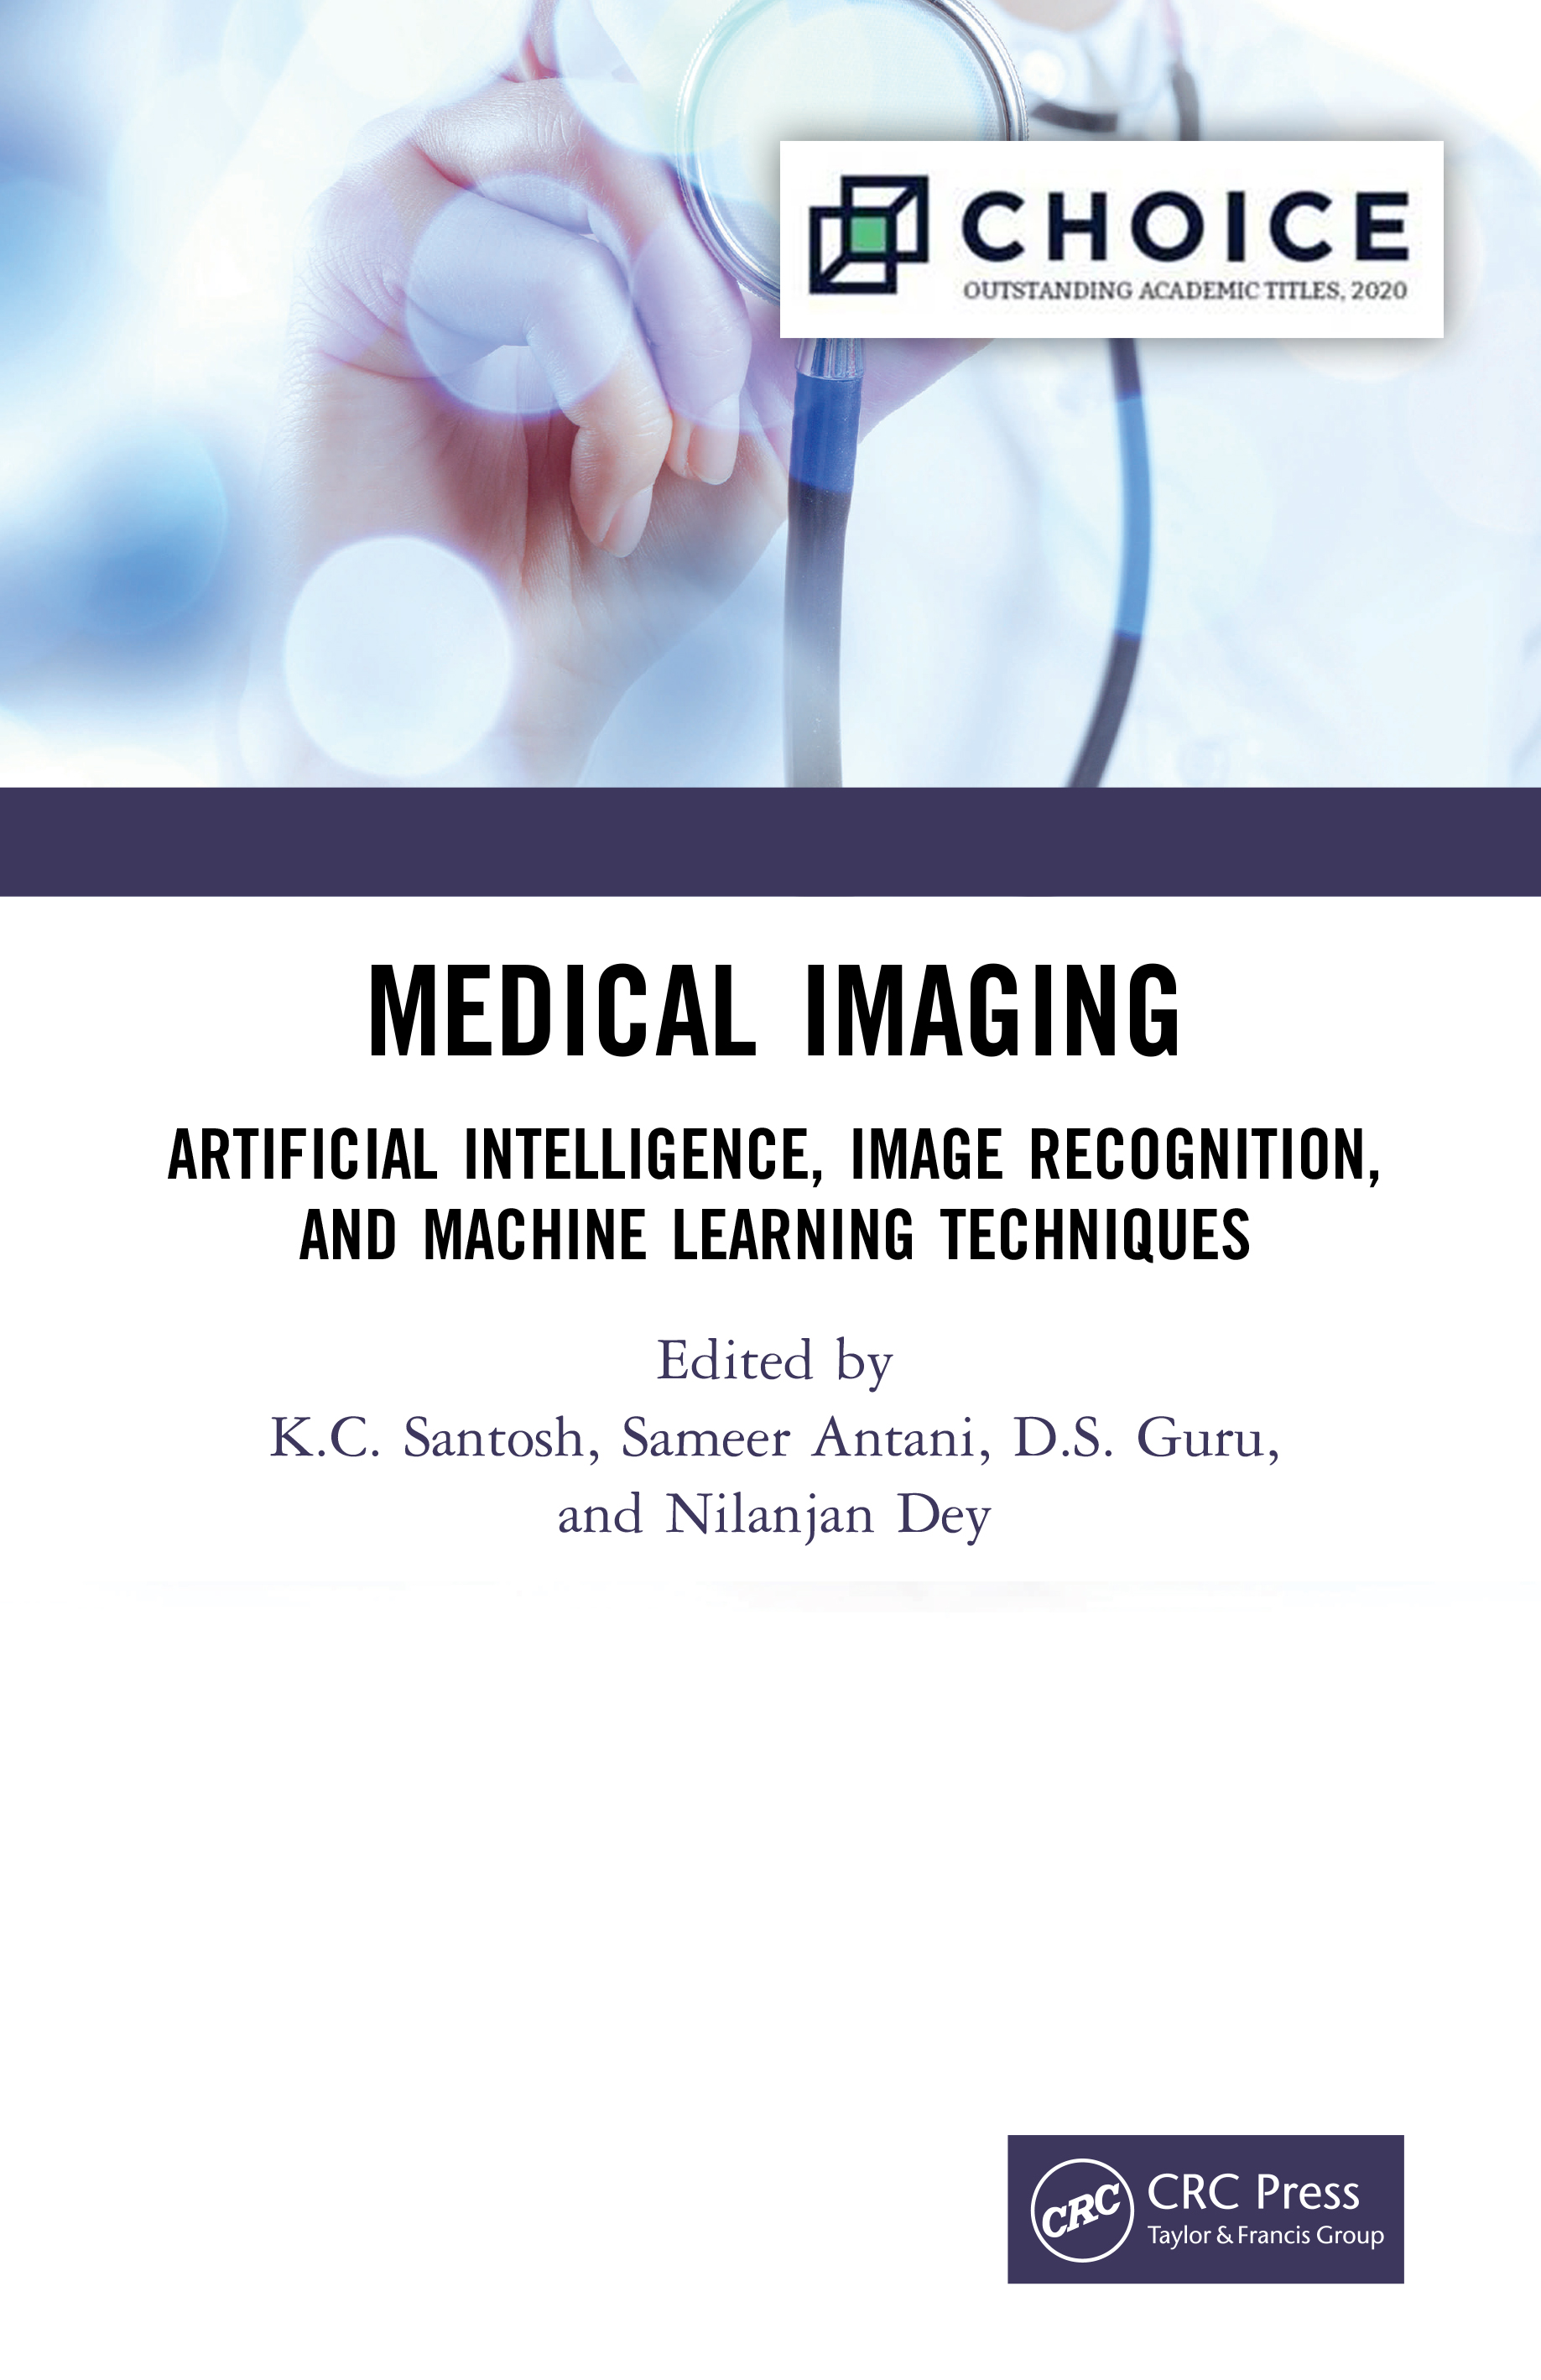 Medical Imaging: Artificial Intelligence, Image Recognition, and Machine Learning Techniques book cover